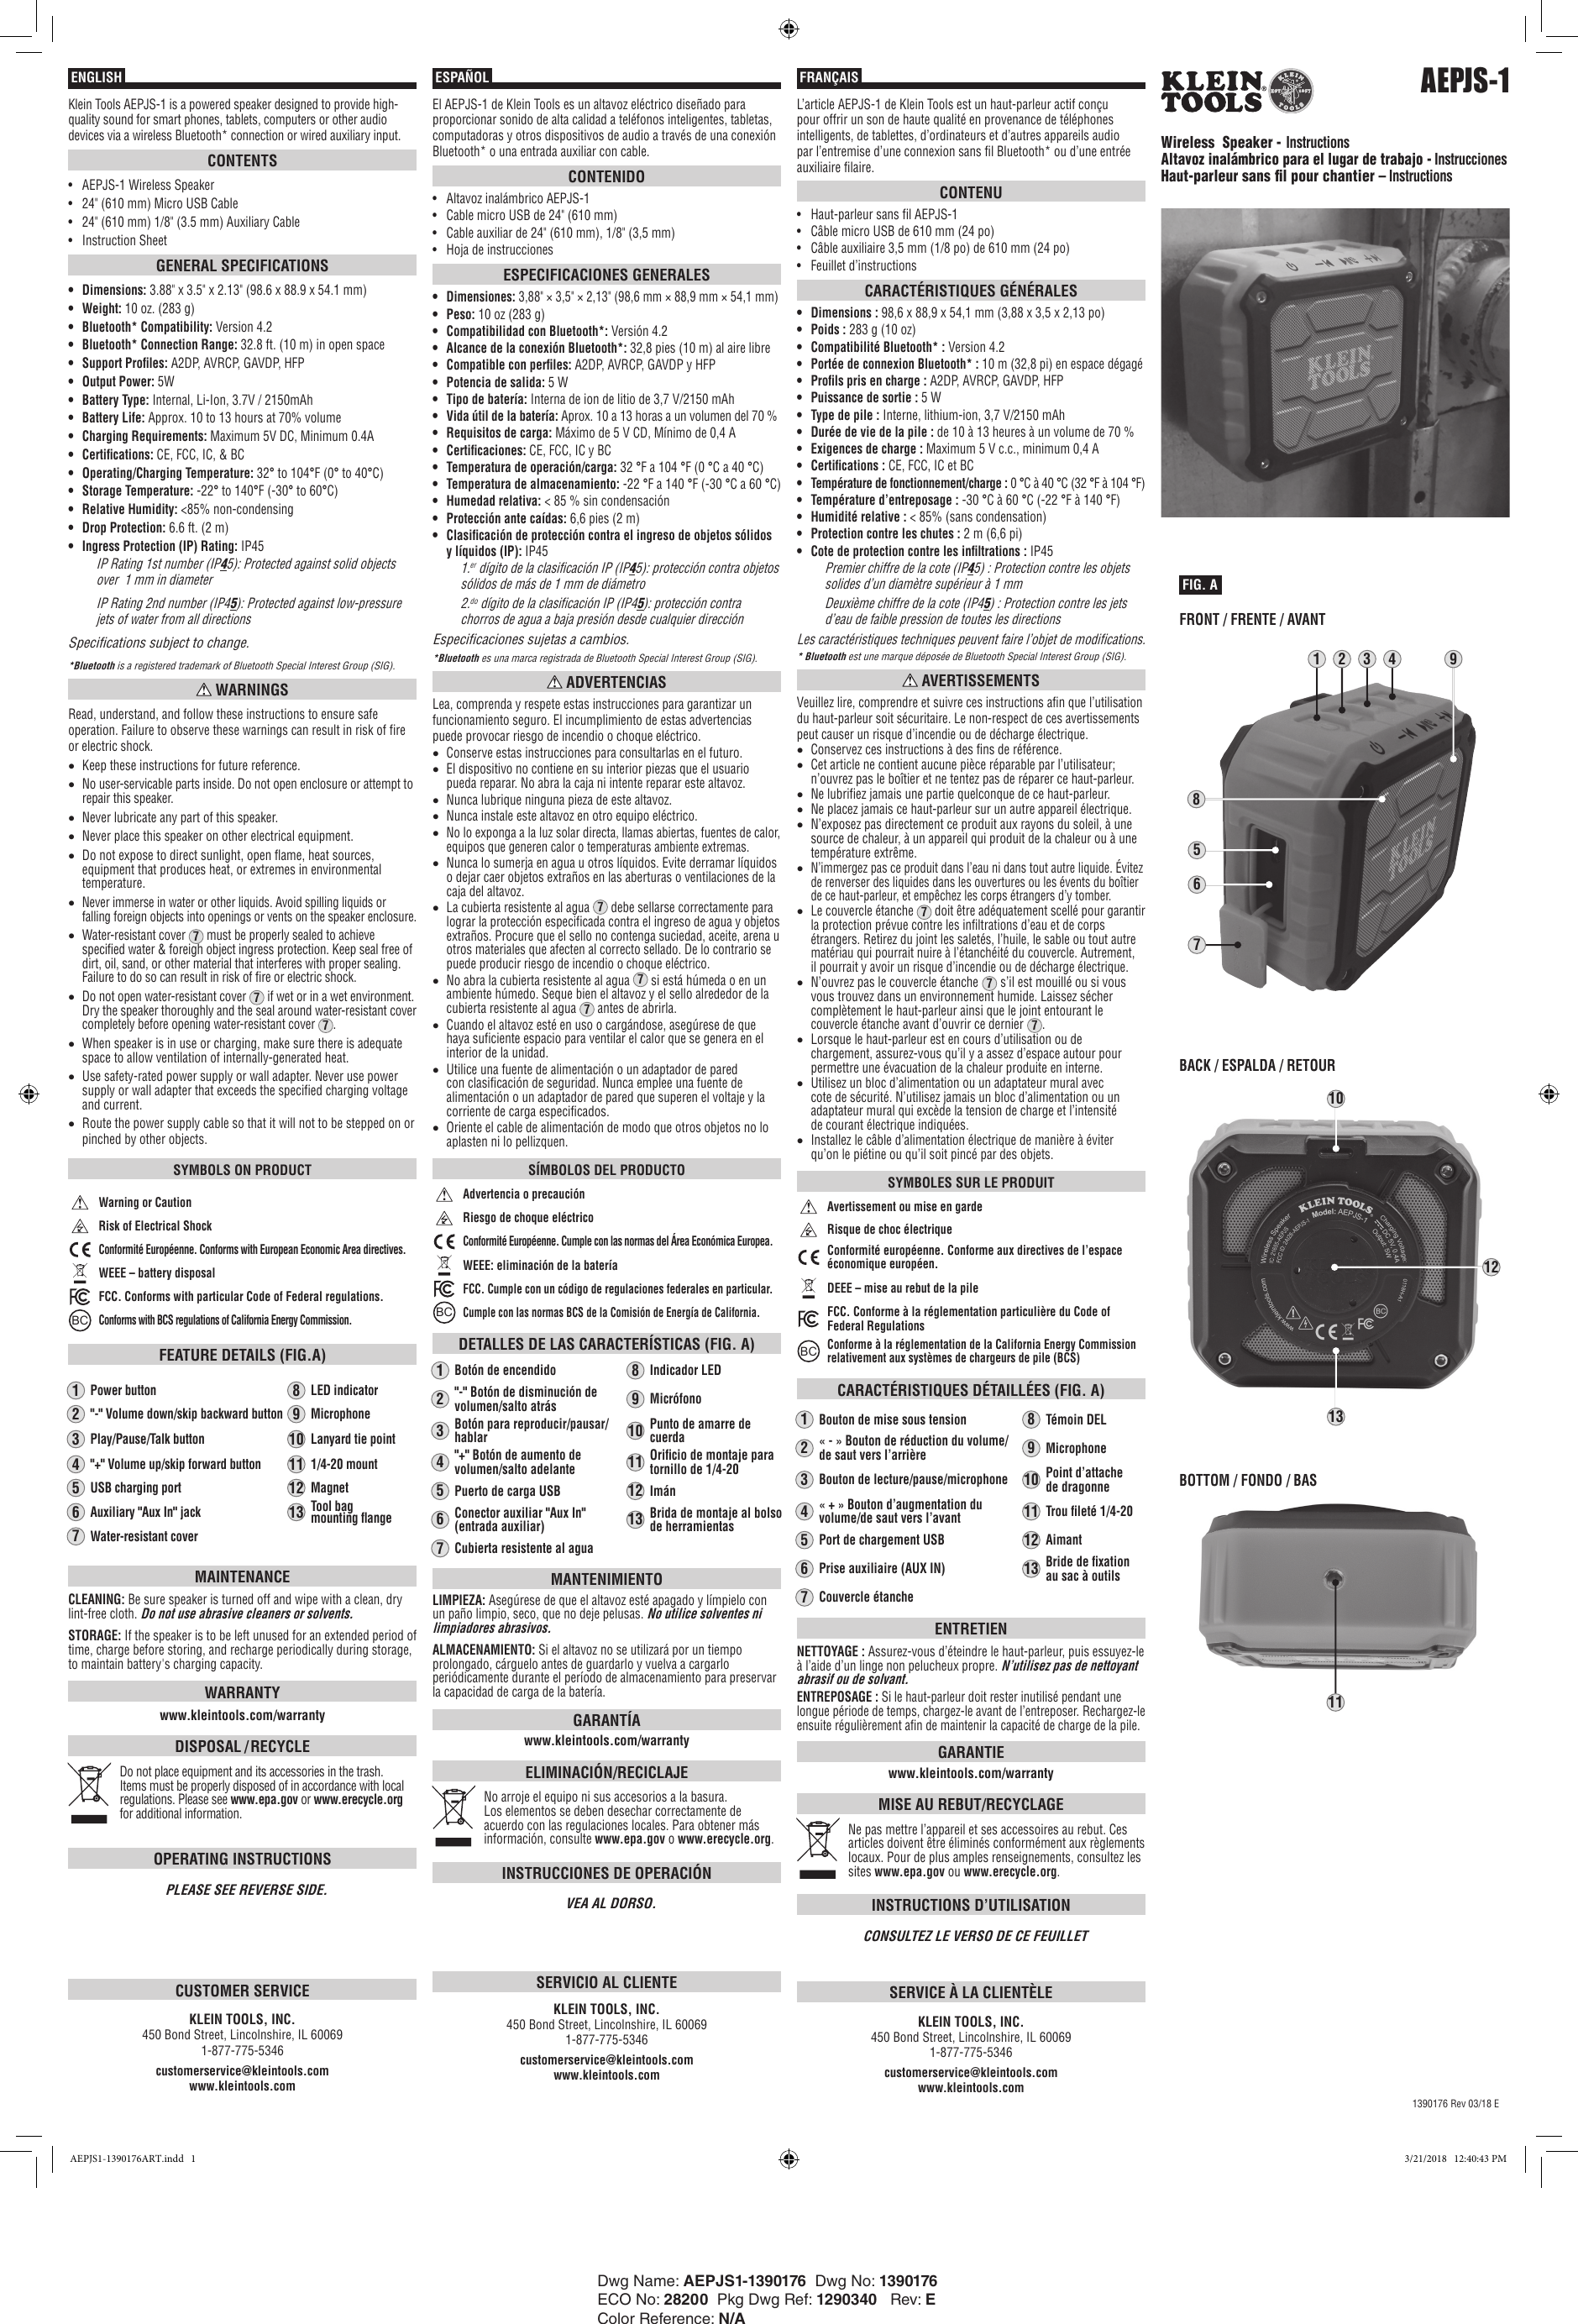 Planet Audio Subwoofer Air Space Requirements Manual Guide